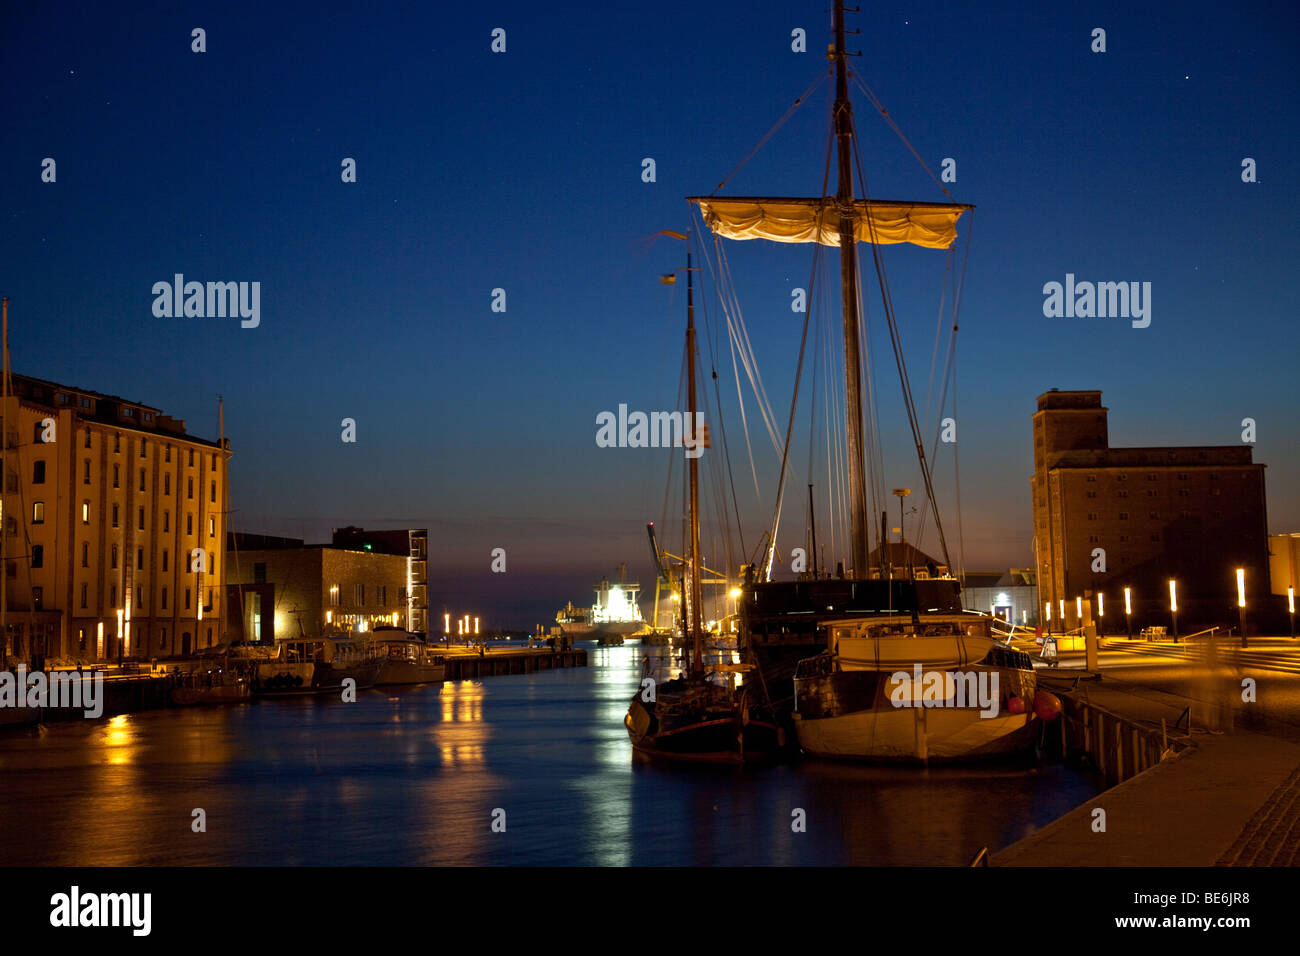 Old harbor of Wismar, Germany, with sailing boat and storehouse by night - Stock Image